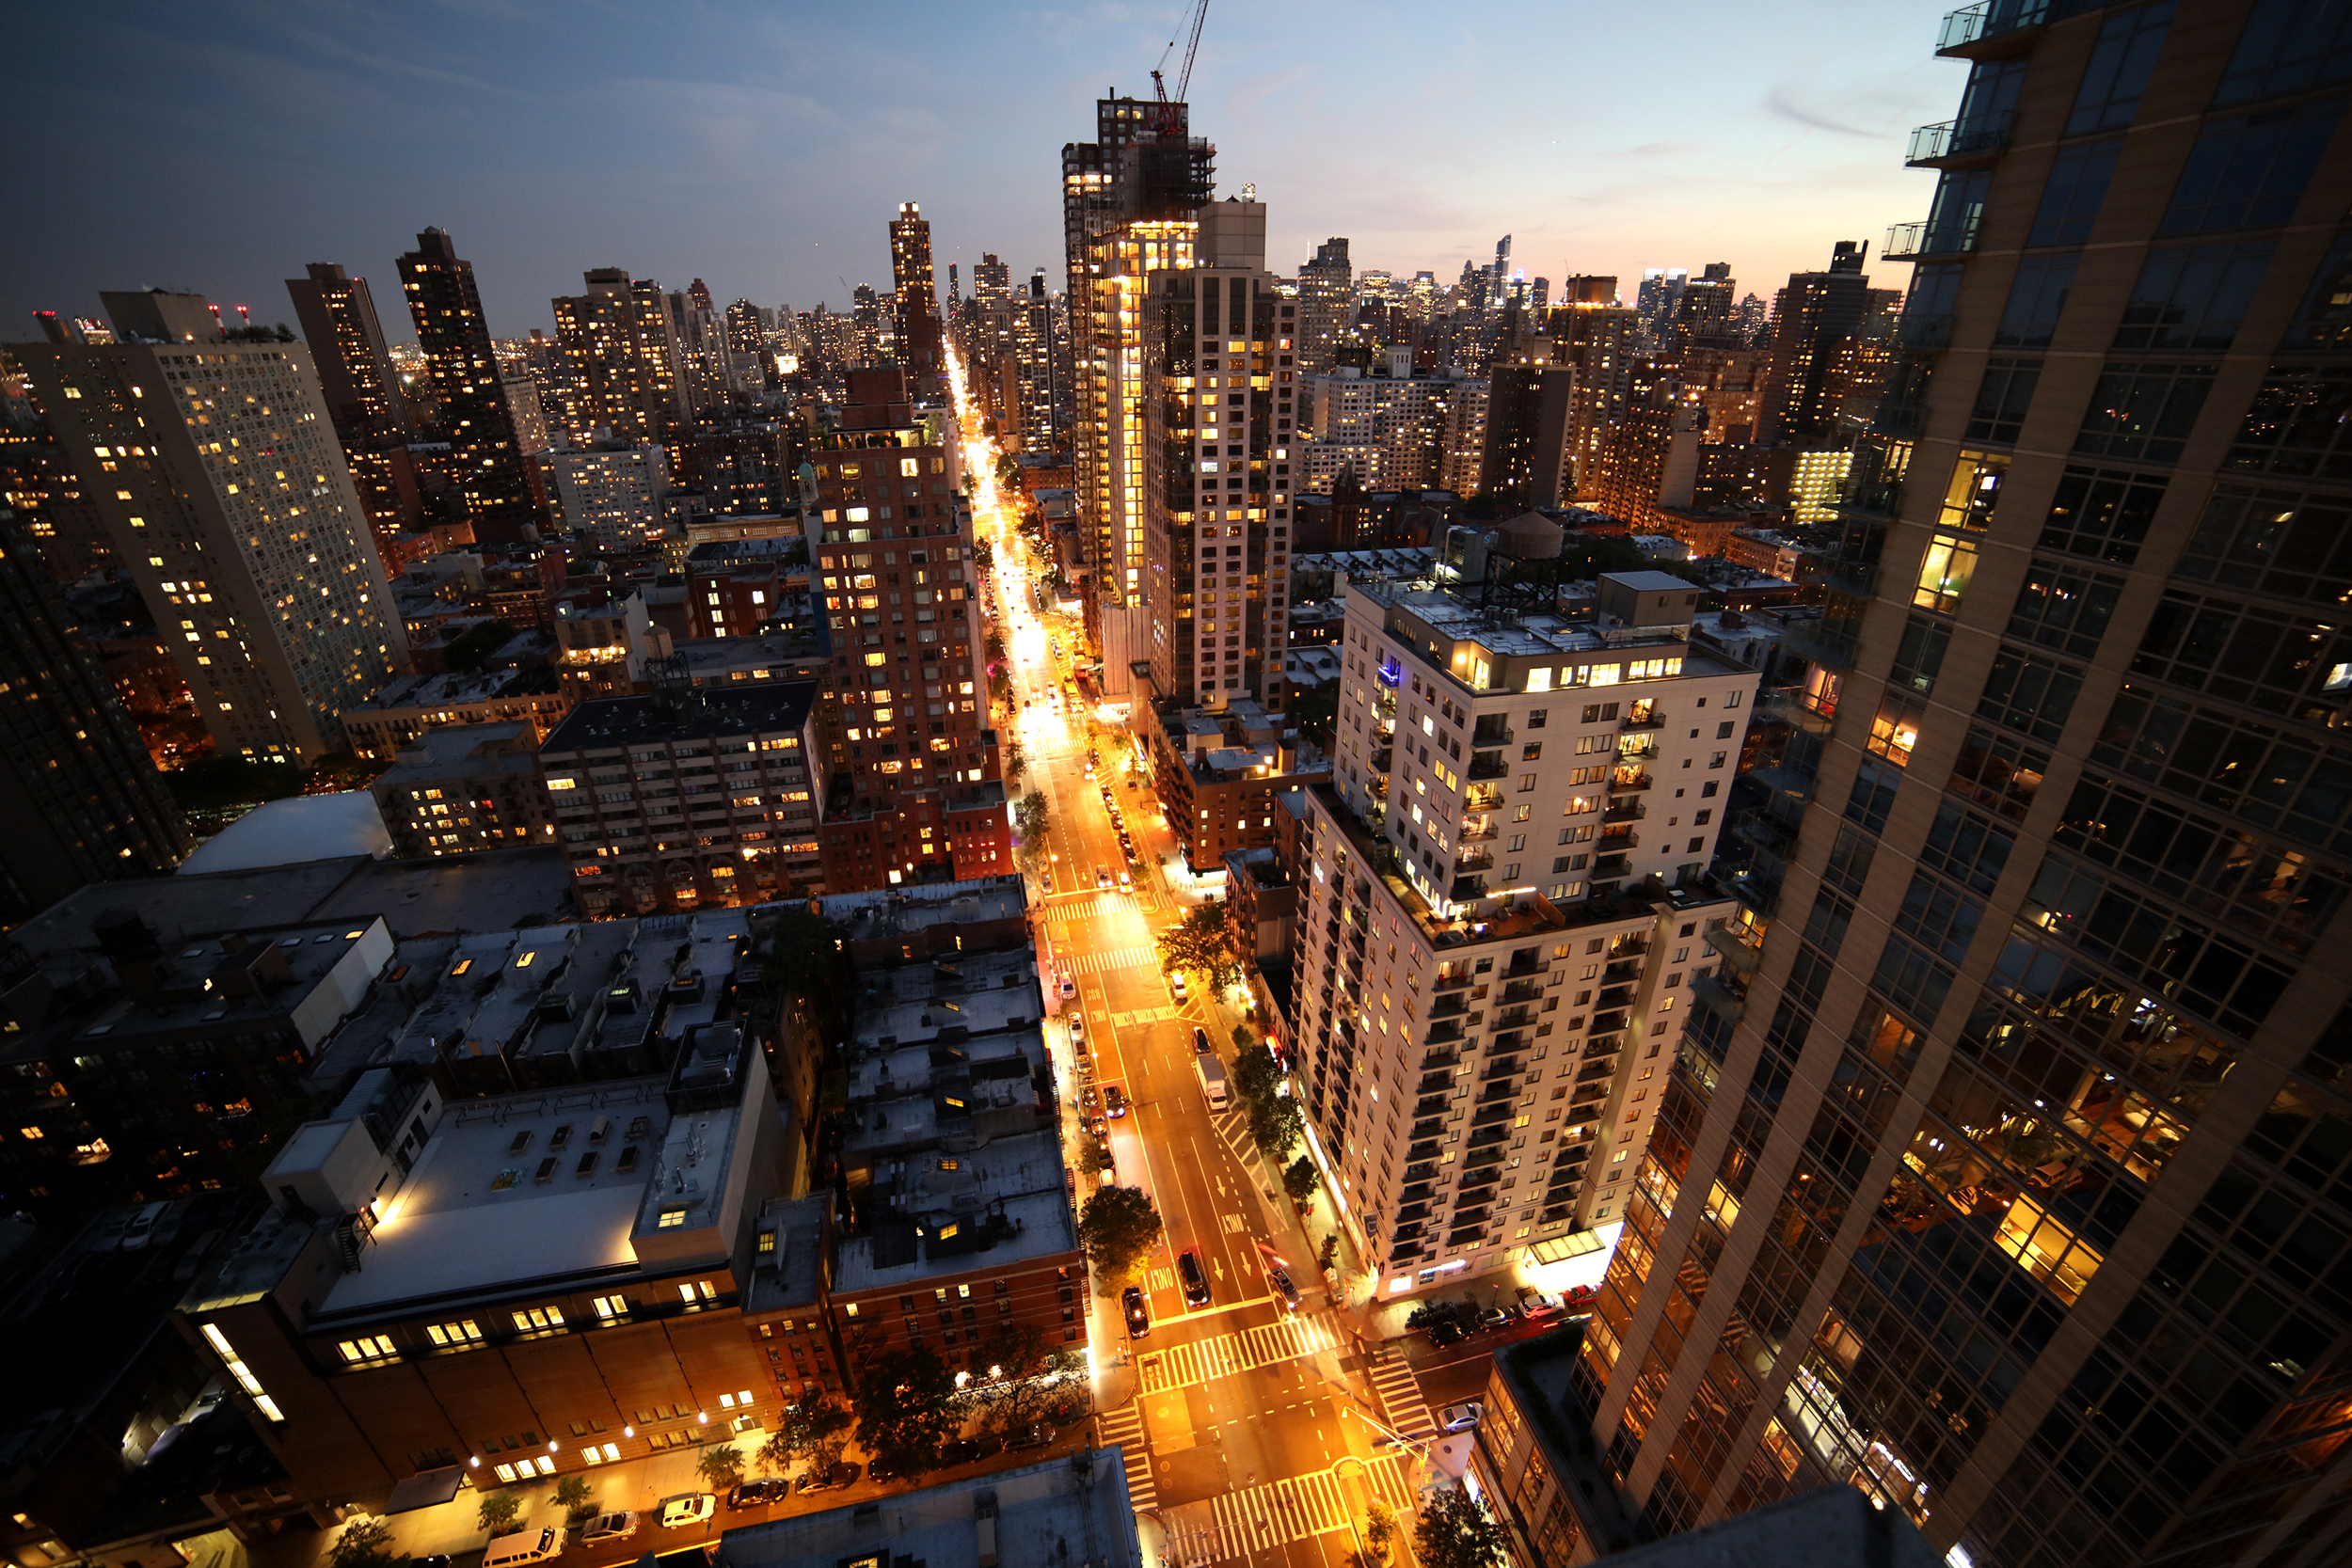 City at Night, Upper East Side